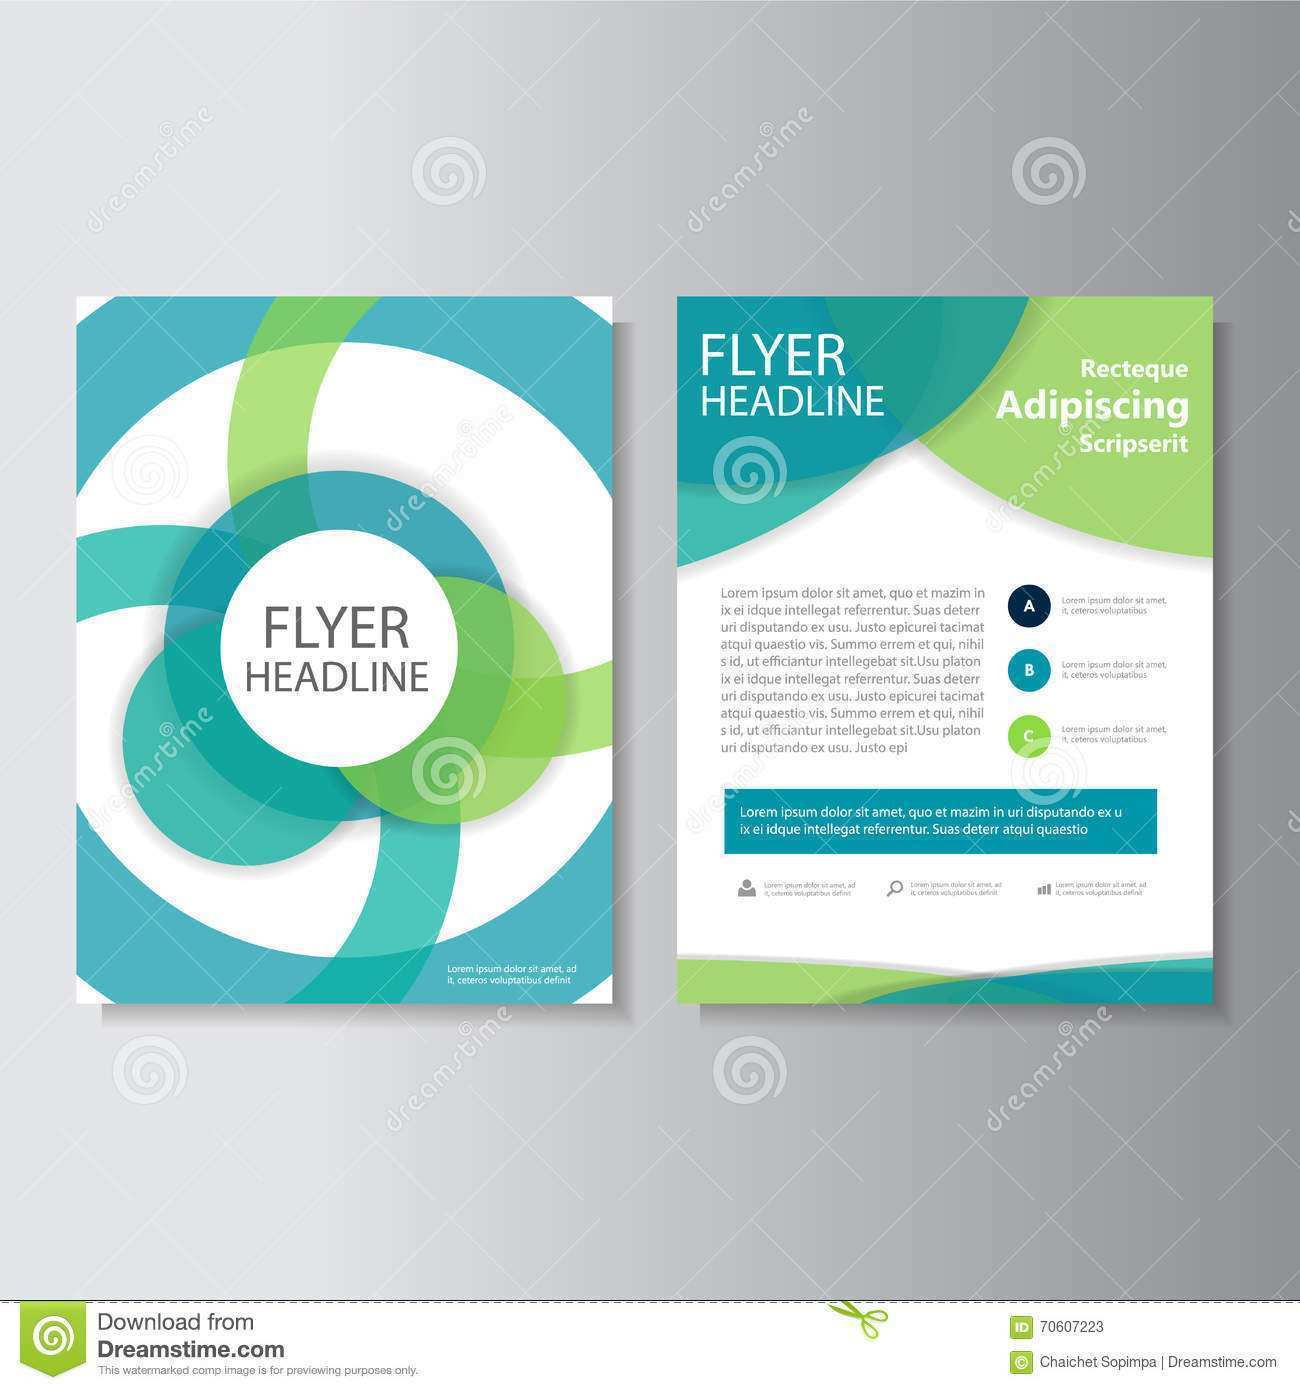 38 Creative Brochure And Flyers Template Design In Vector Maker for Brochure And Flyers Template Design In Vector